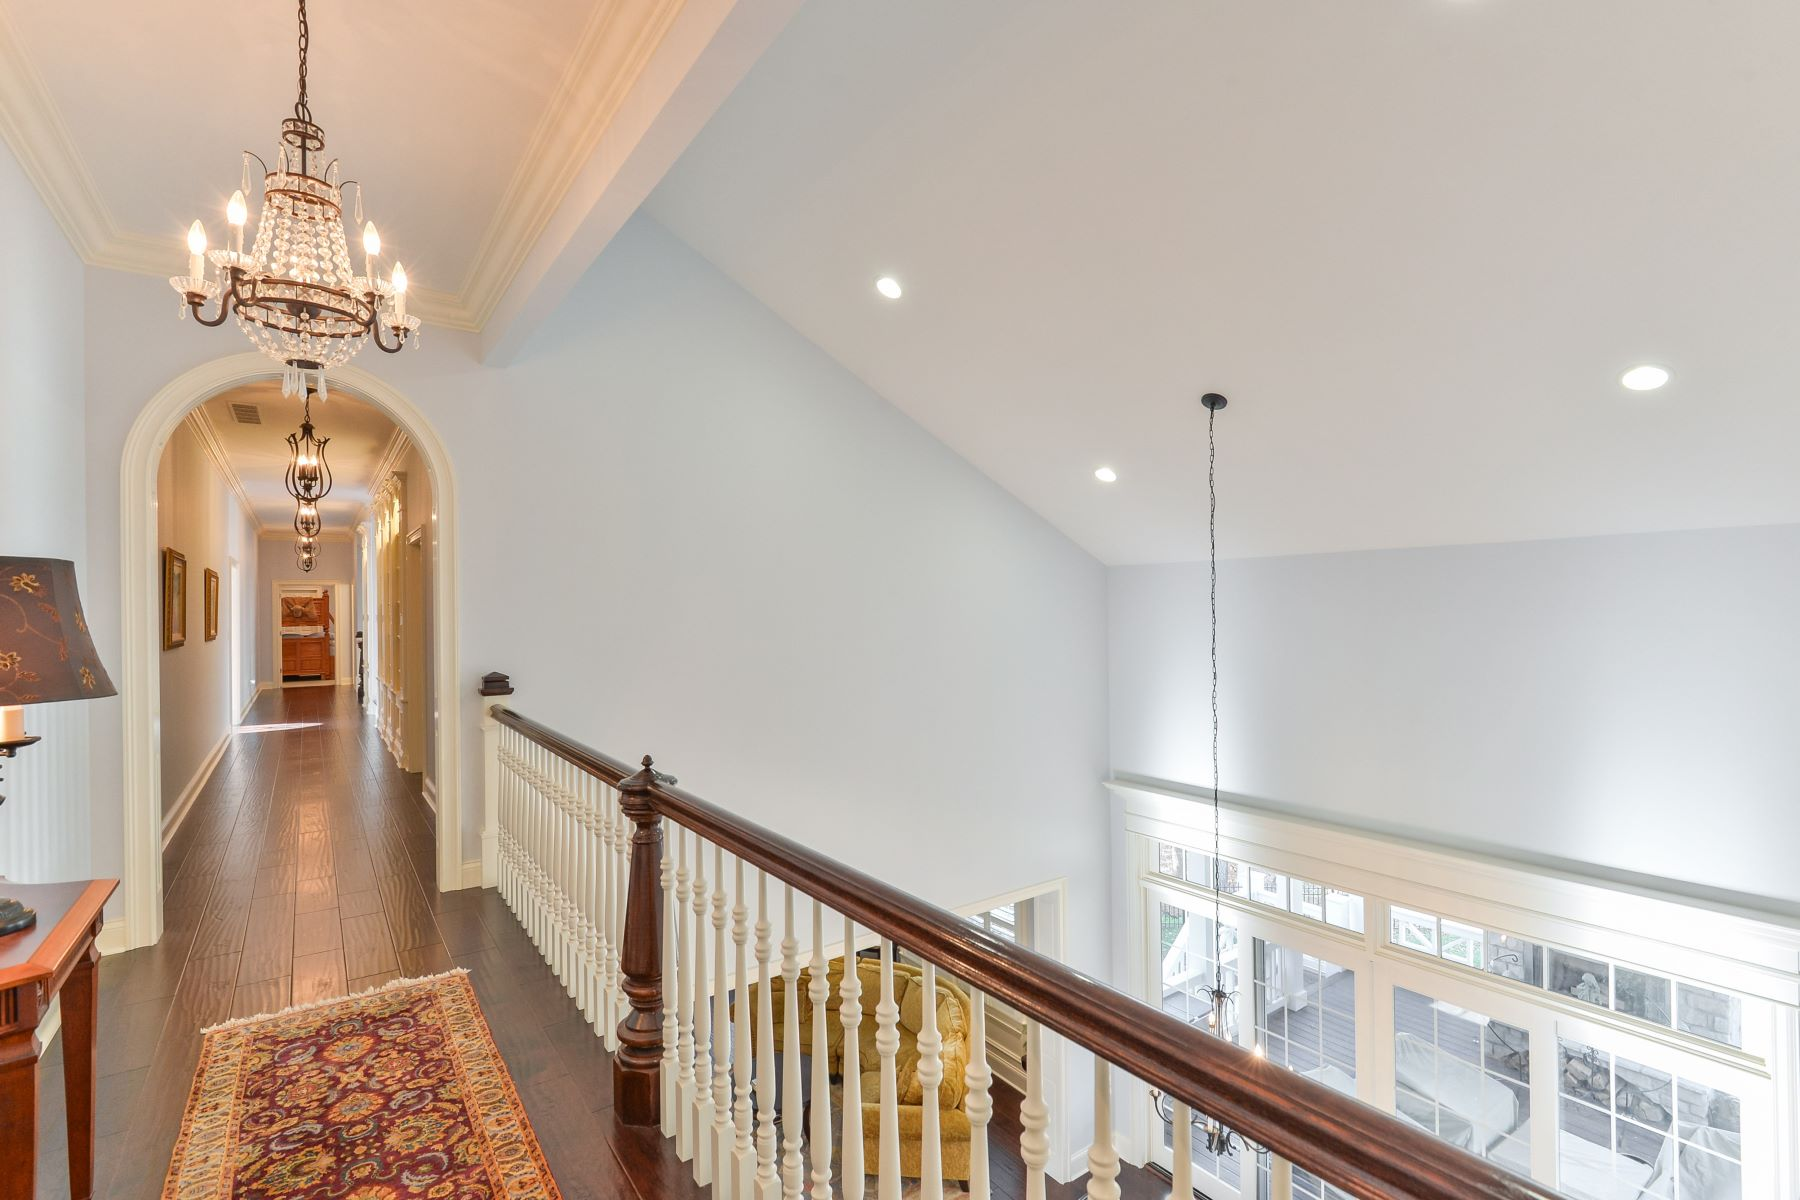 Additional photo for property listing at 14460 River Glades Drive 14460 River Glades Drive Prospect, Kentucky 40059 United States